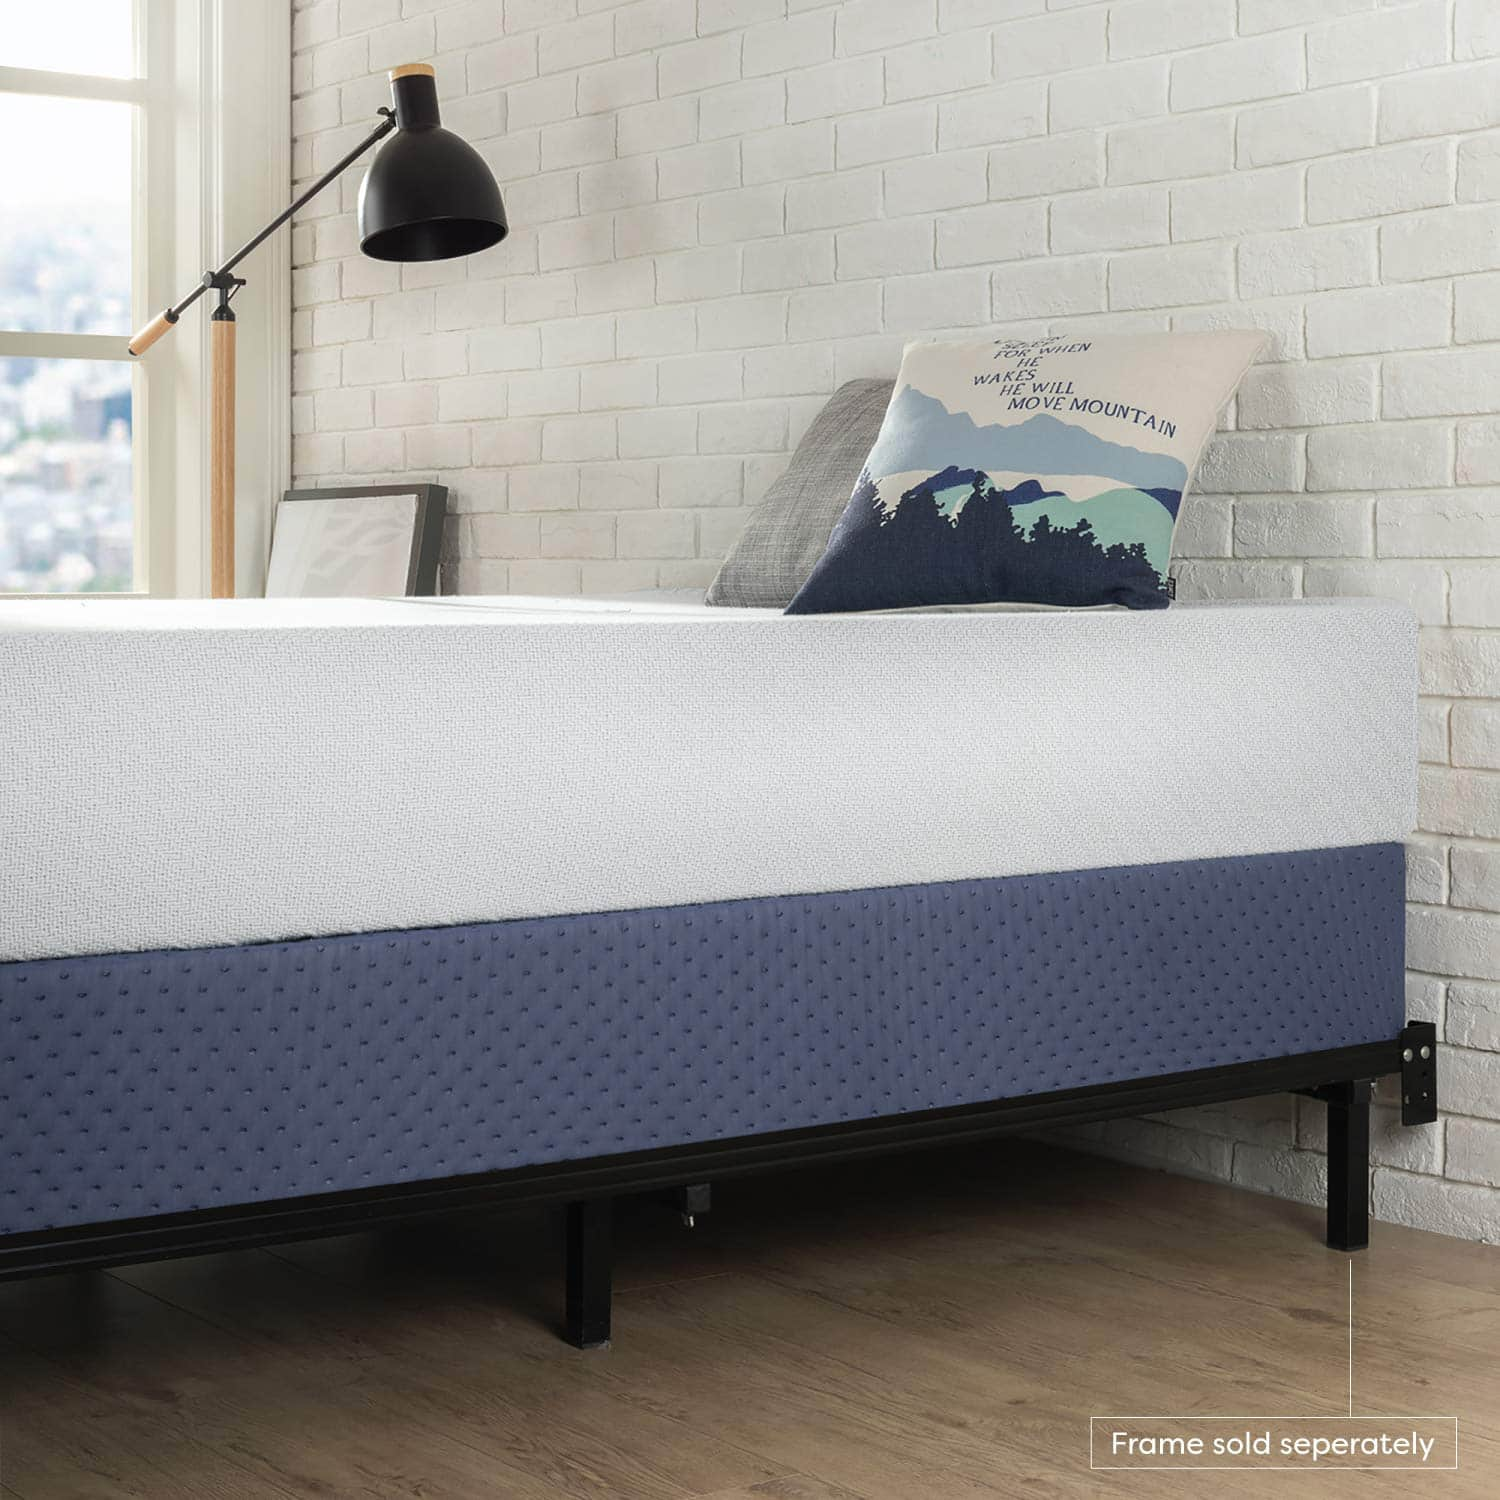 Best Price Mattress Full Box Spring; $125.99 + FS